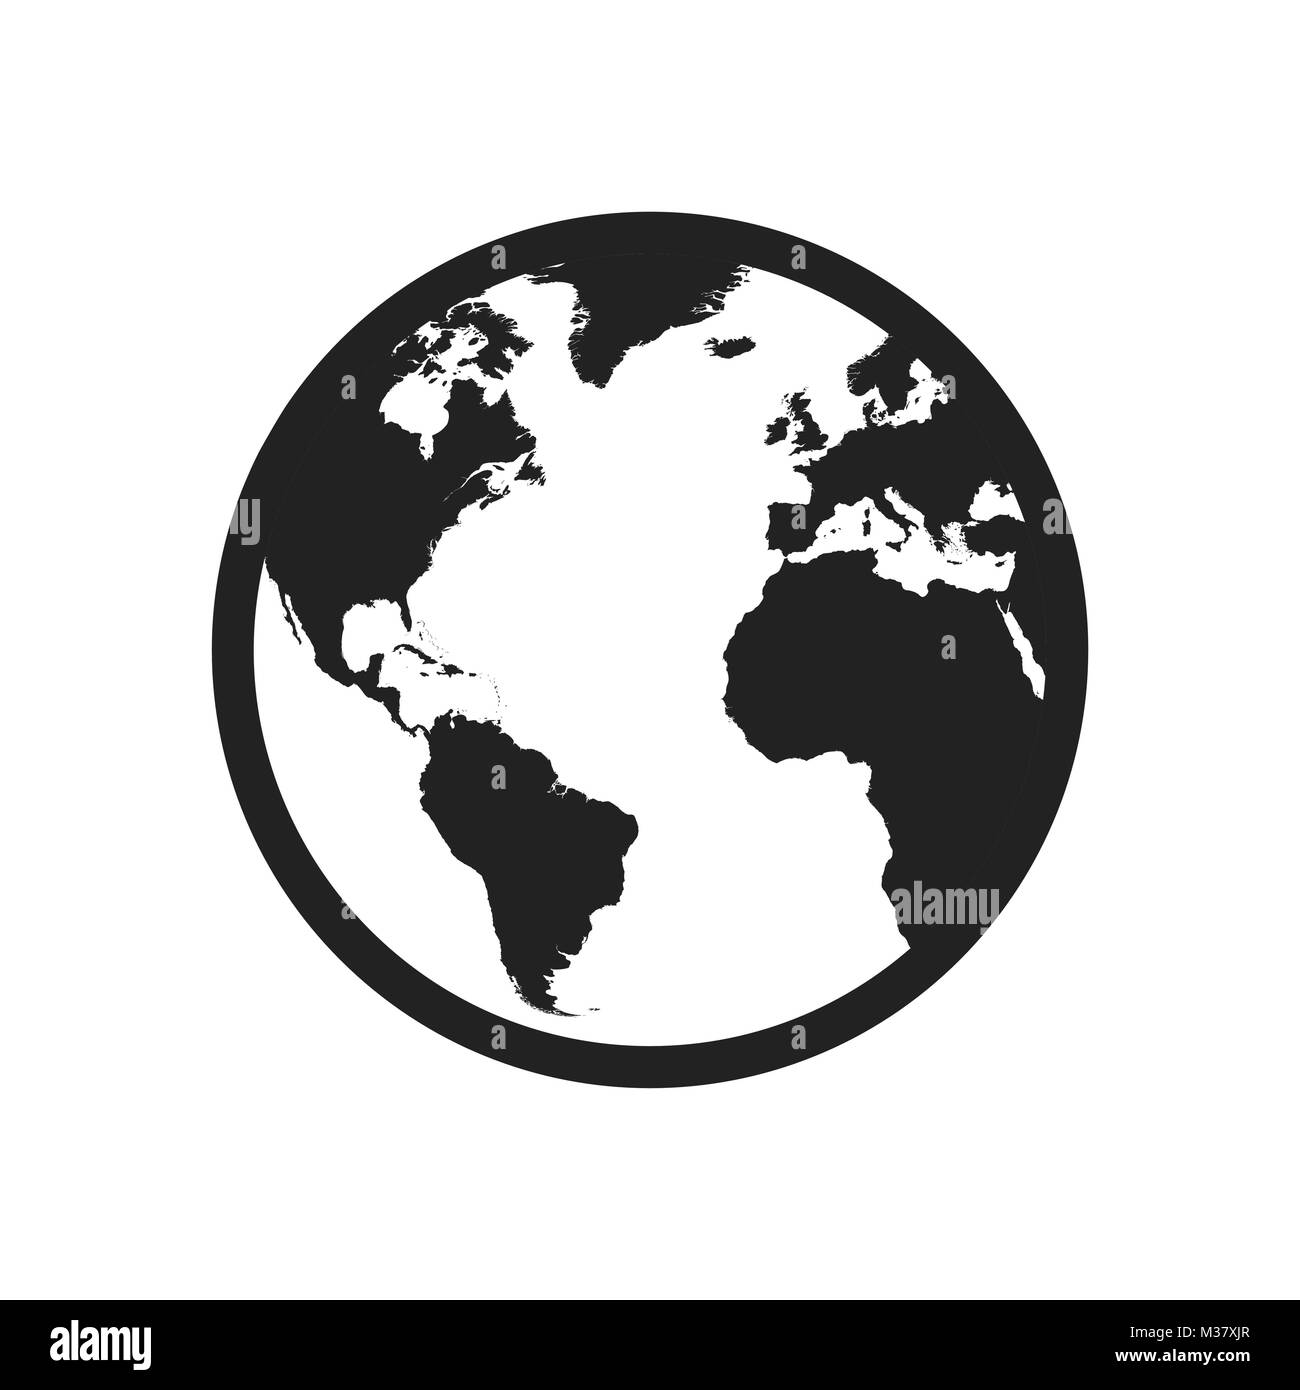 Globe world map vector icon round earth flat vector illustration globe world map vector icon round earth flat vector illustration planet business concept pictogram on white background gumiabroncs Image collections